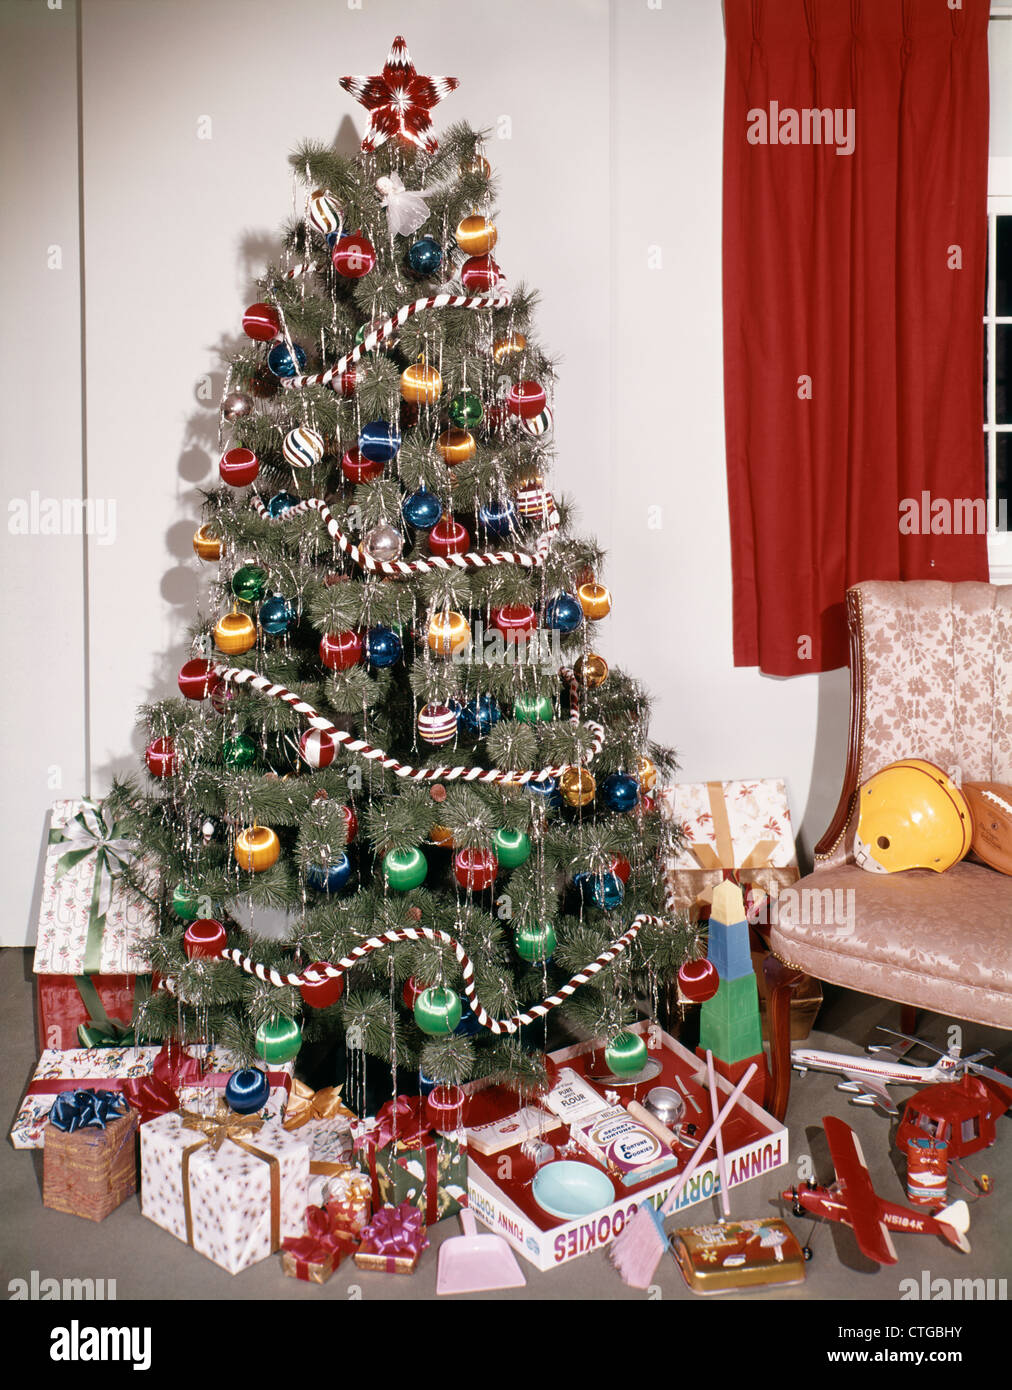 1960s DECORATED CHRISTMAS TREE WITH ORNAMENTS GARLAND TINSEL ...